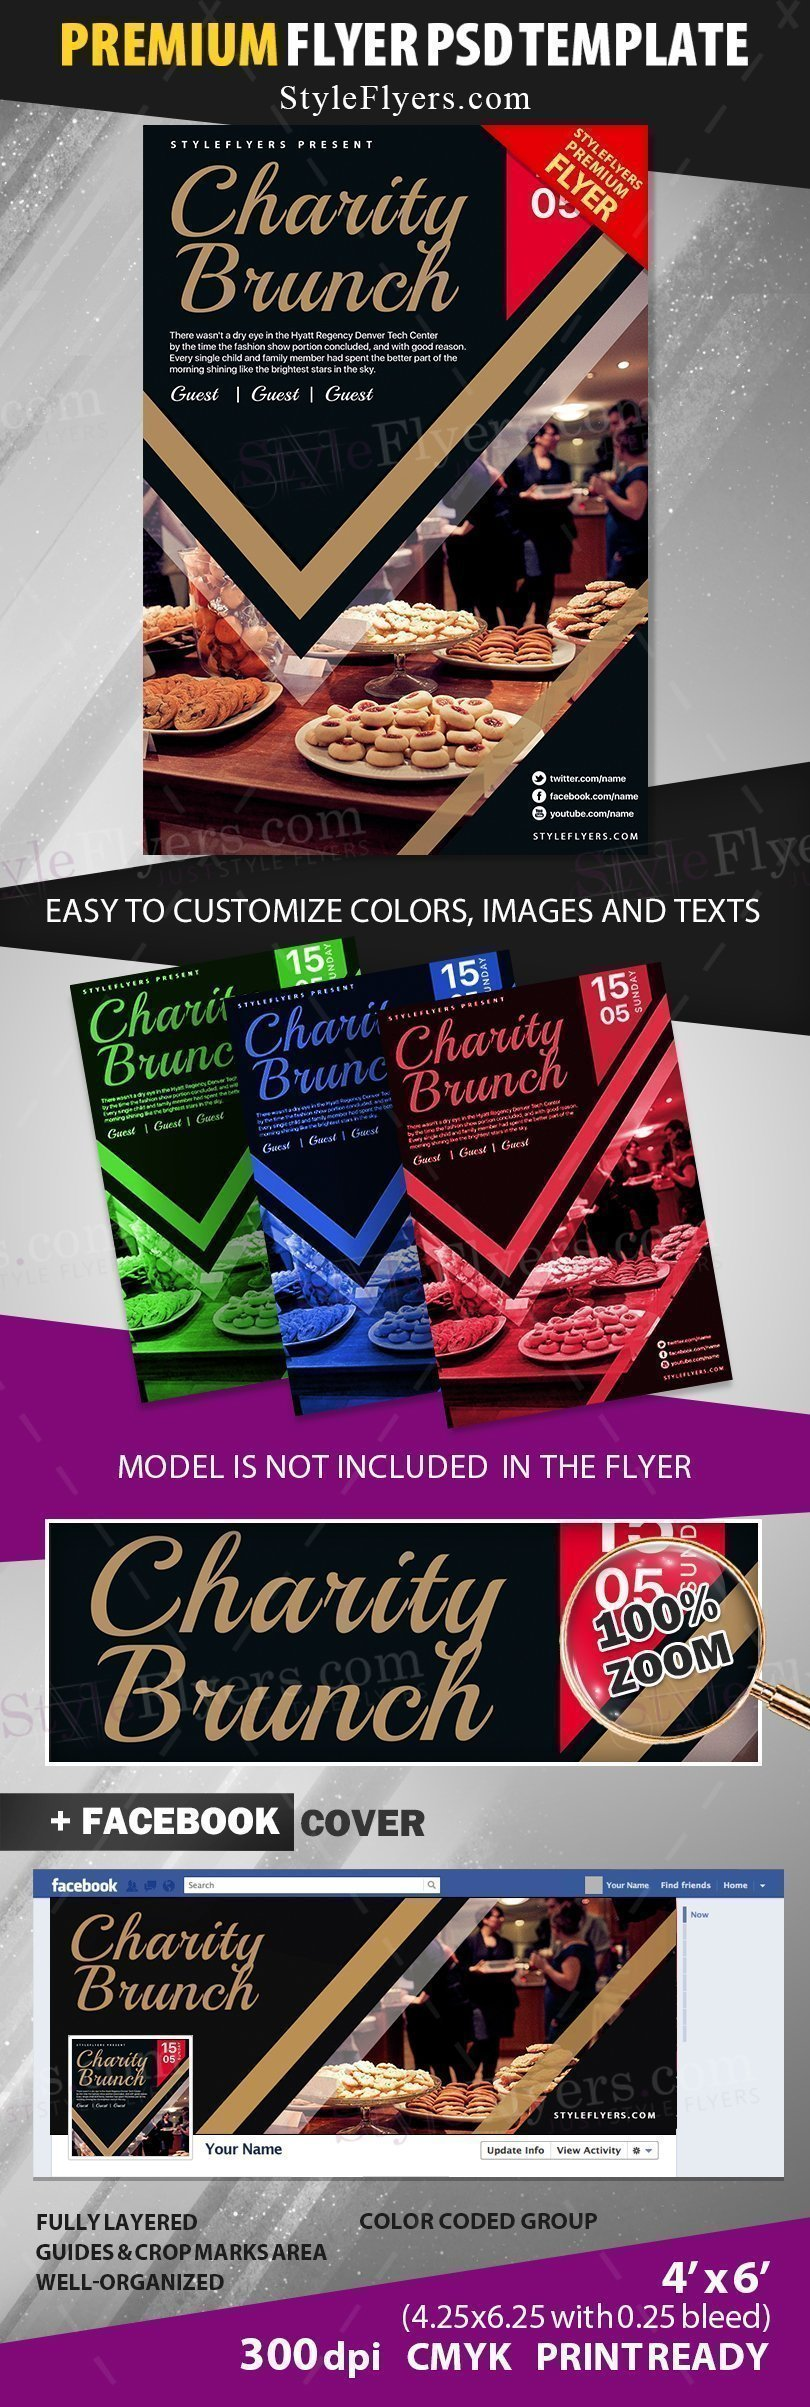 preview_charity-brunch_psd_flyer